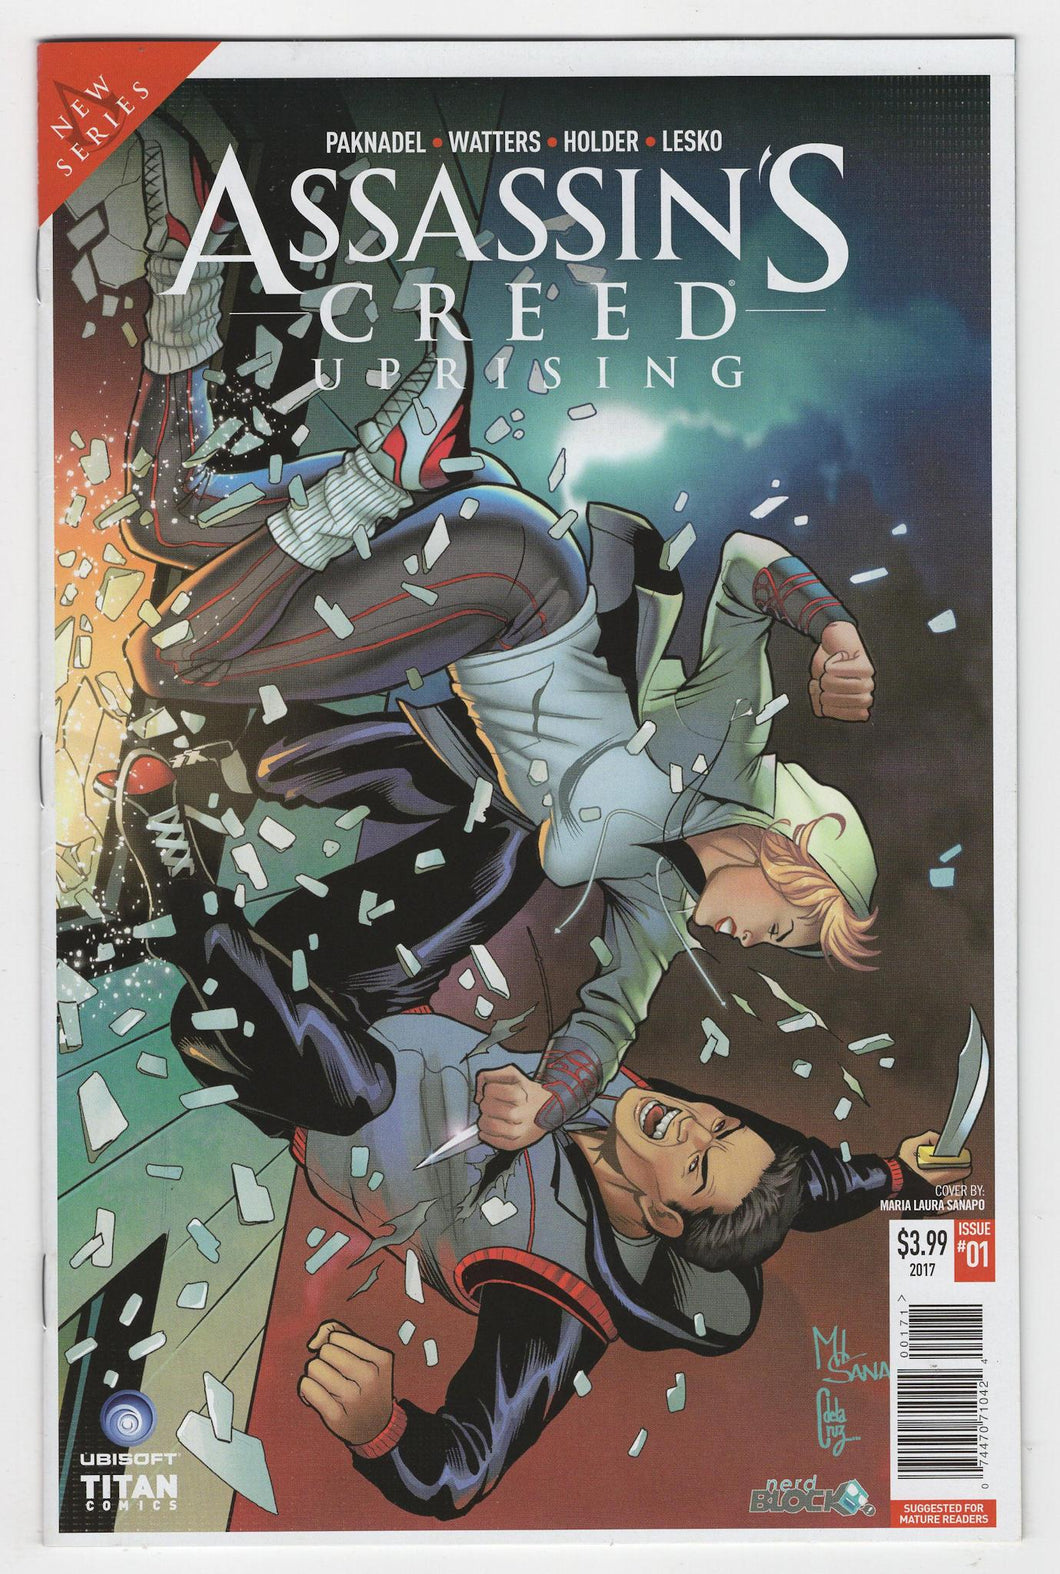 Assassins Creed Uprising #1 Variant Cover Front